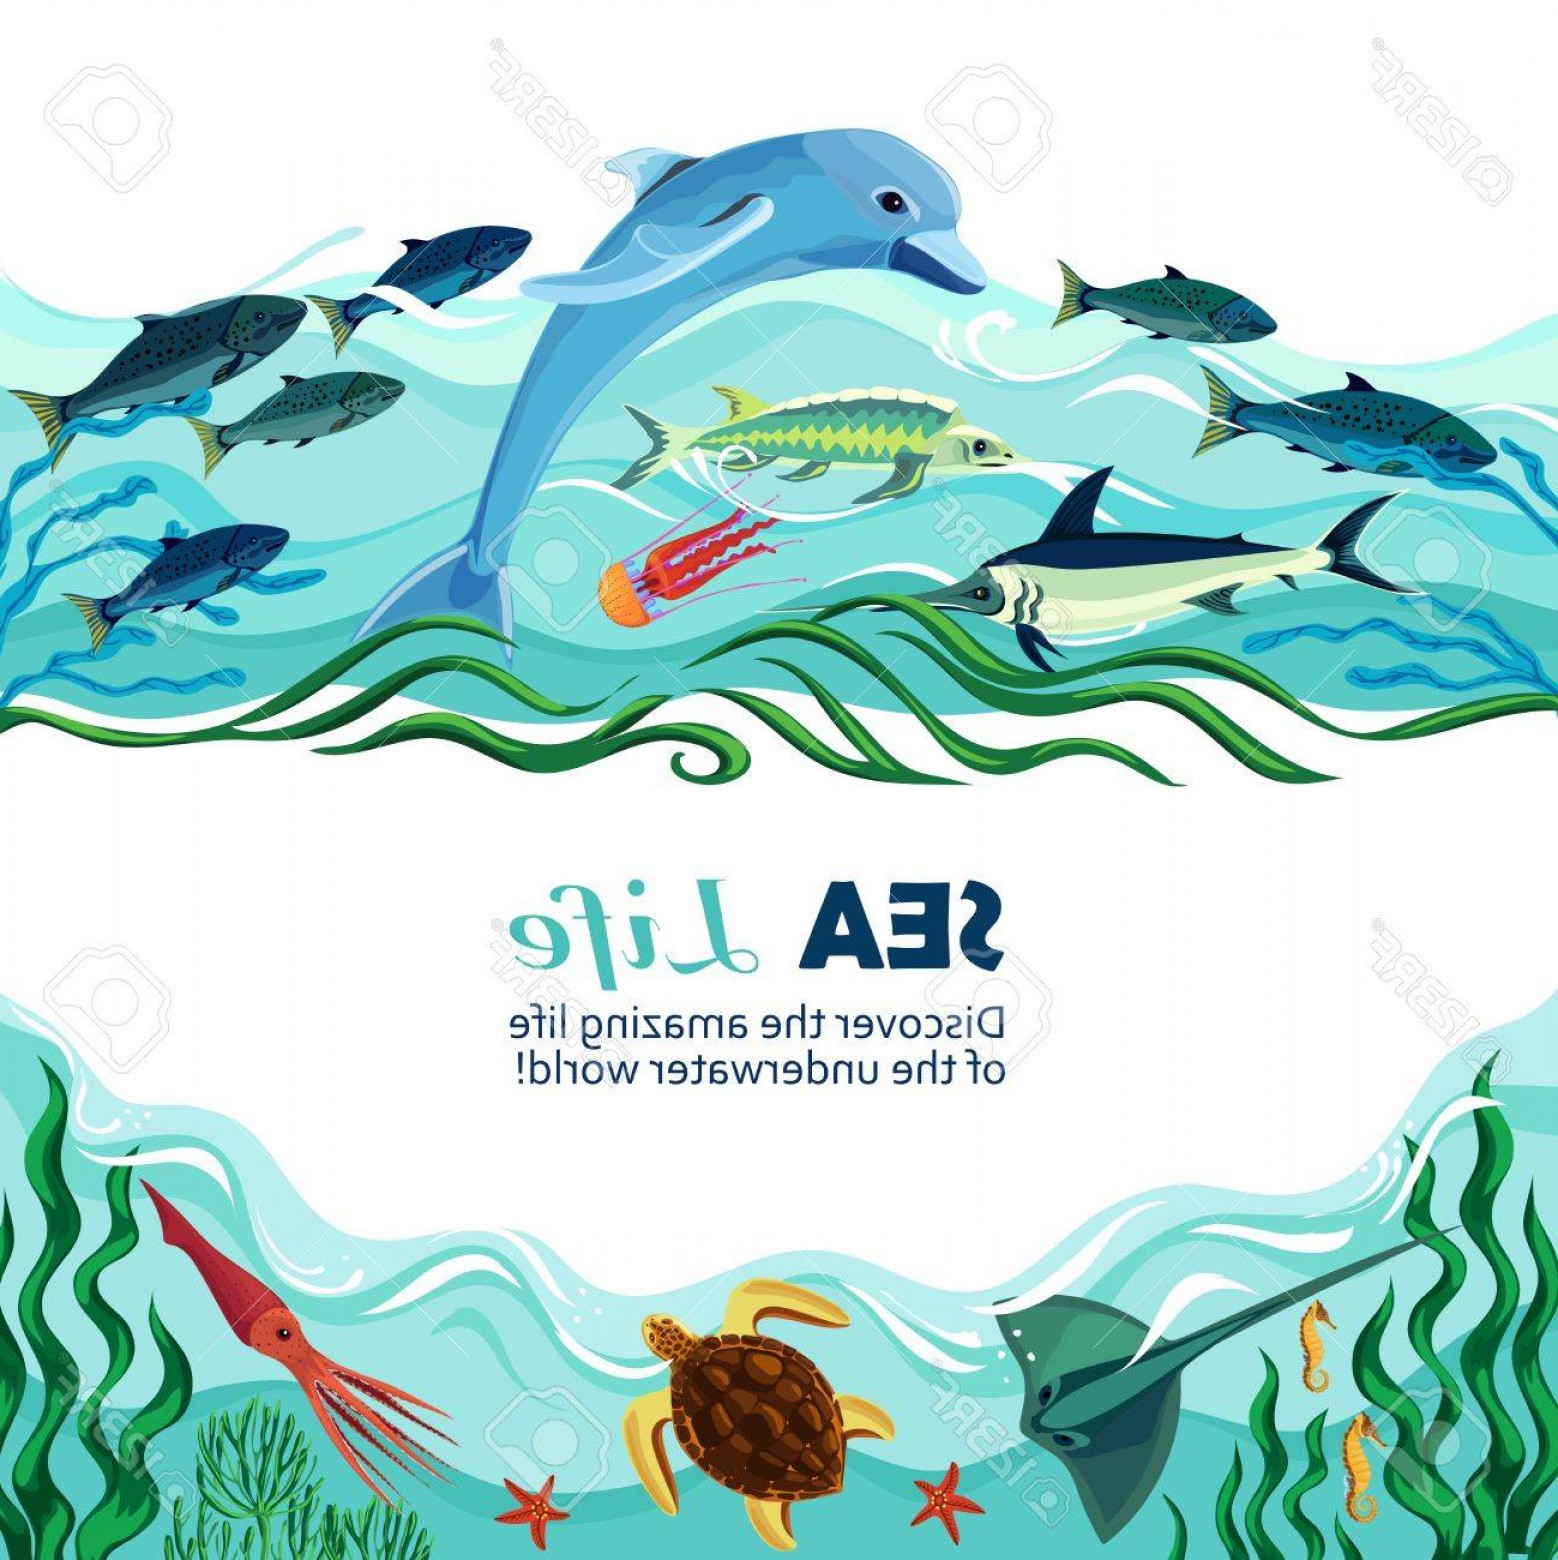 Underwater Sea Vector Art: Photostock Vector Cartoon Vector Illustration Of Sea Life With Exotic Underwater Inhabitants And Shoal Of Fishes In Ma